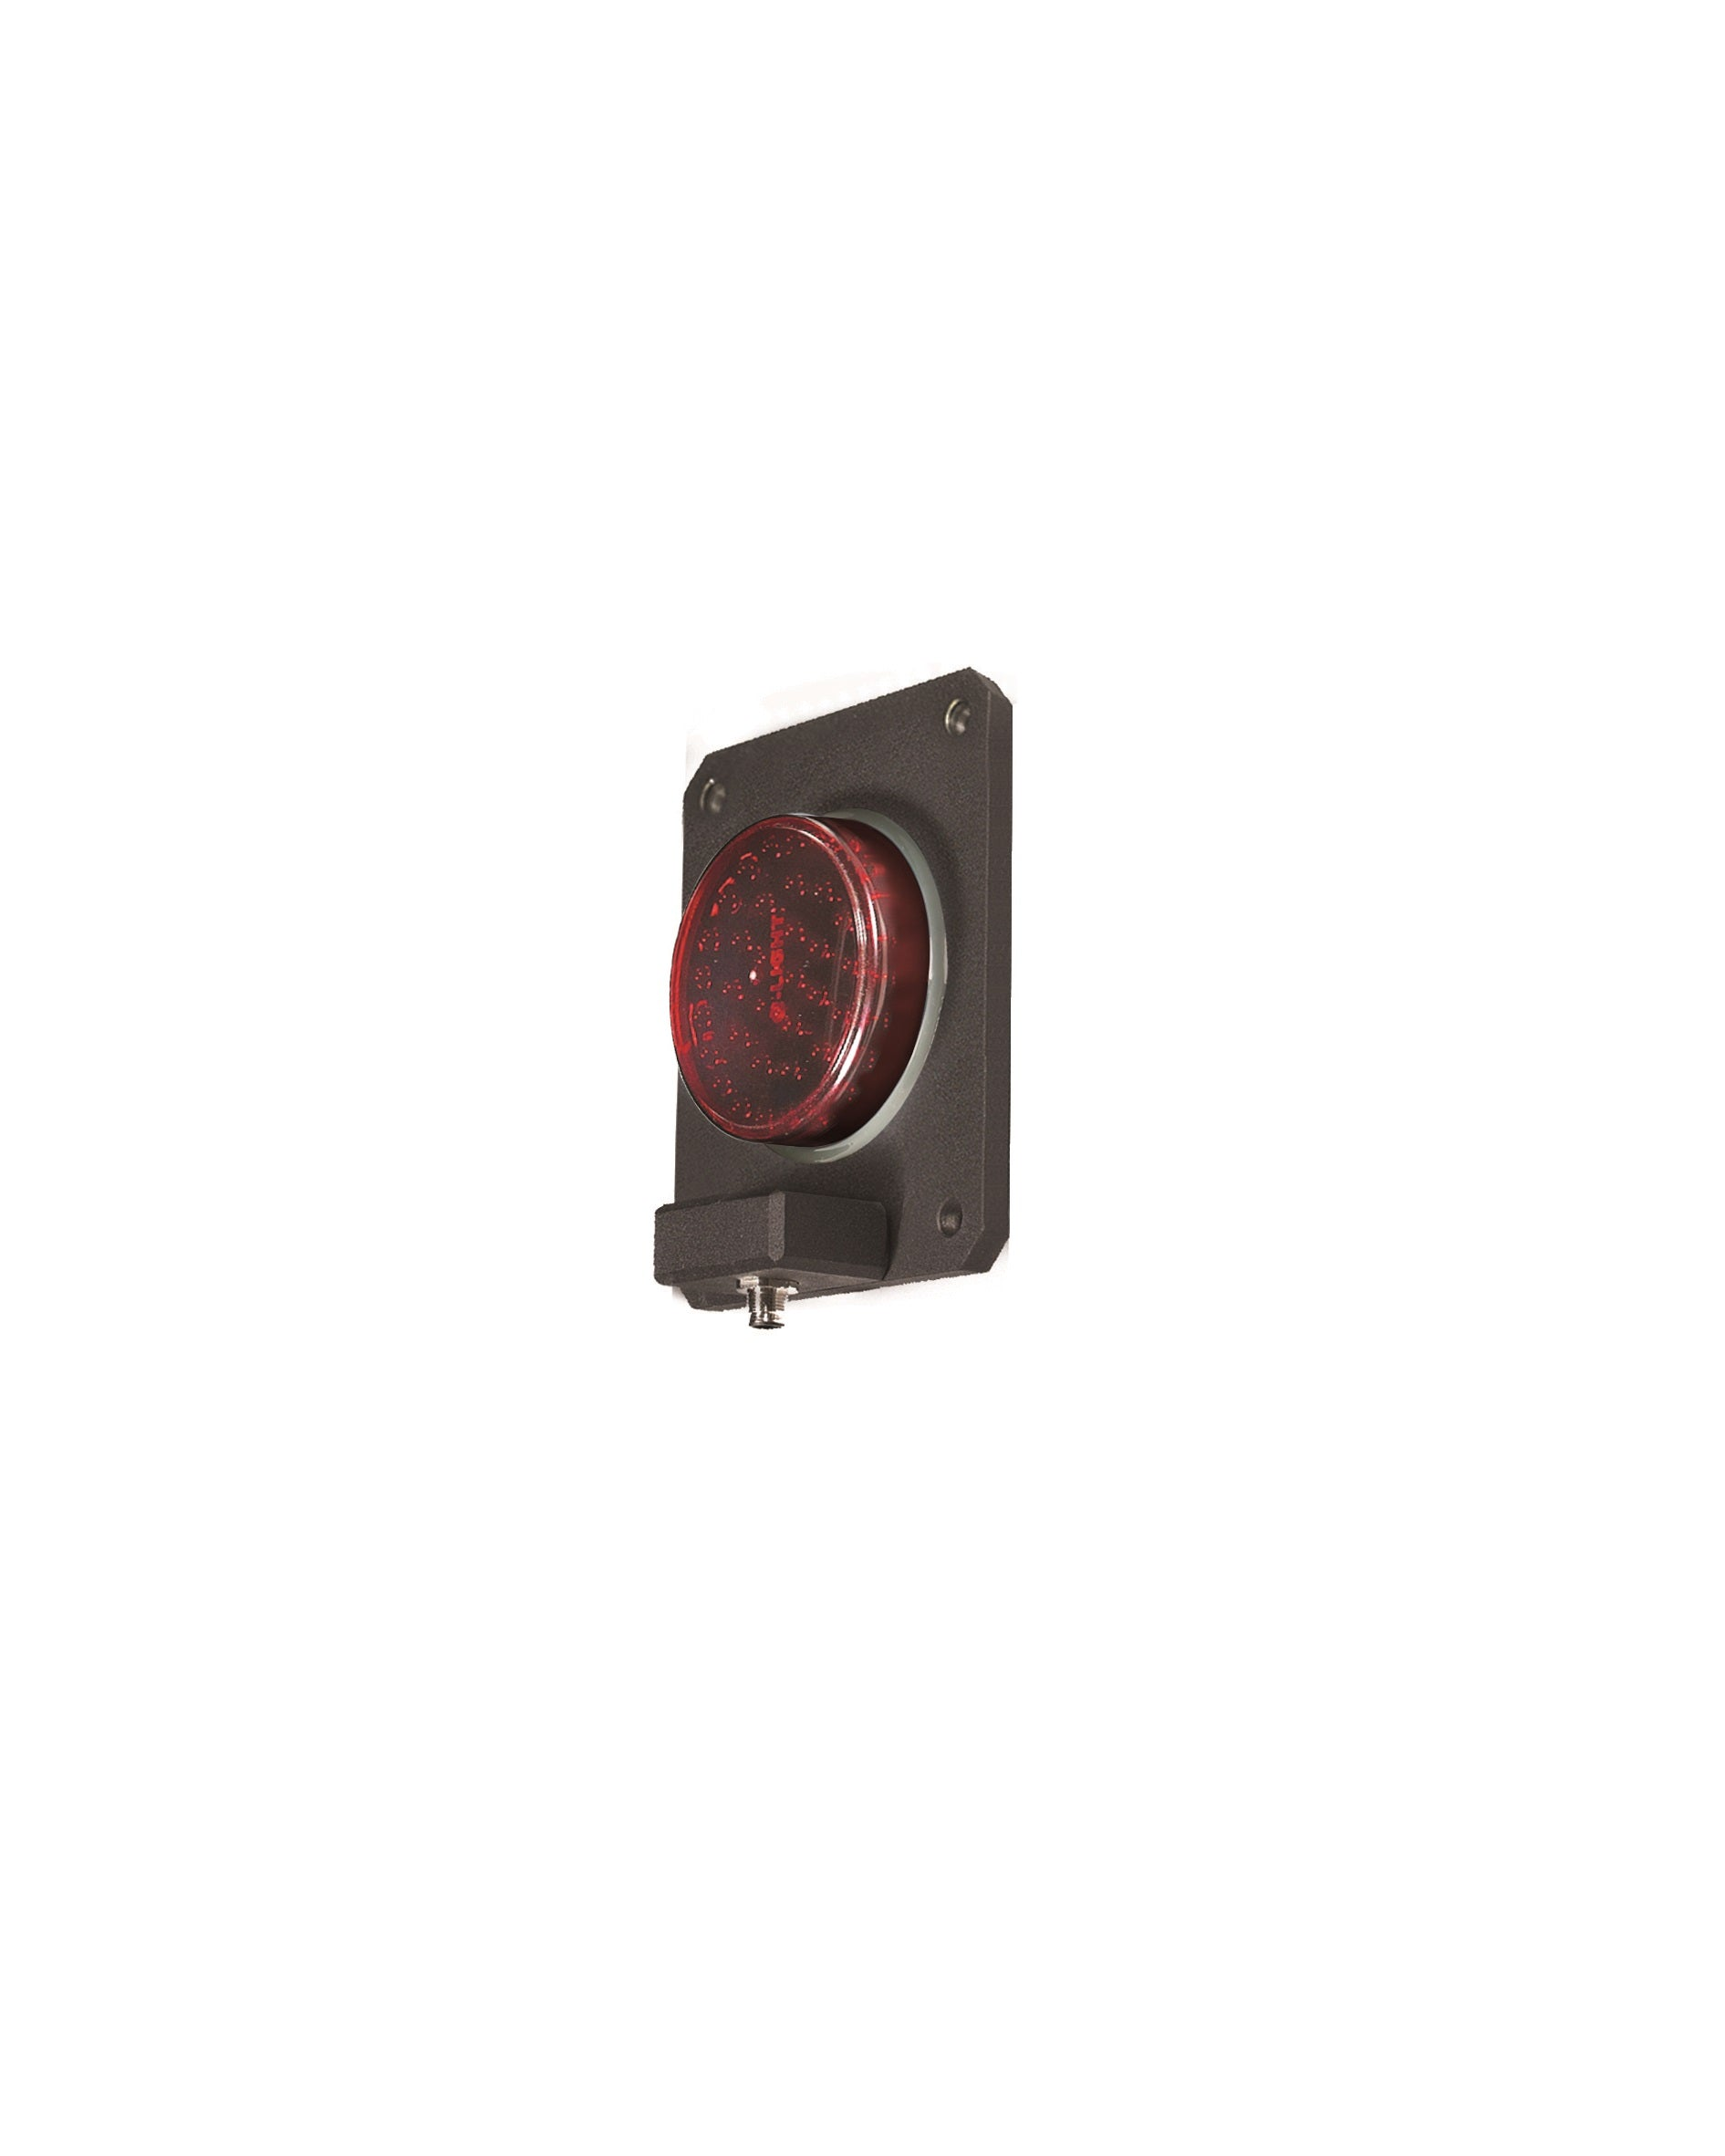 Qlight SSL100M 1 Aspect 92mm Surface Mount IP68 Metal Body LED Traffic Light